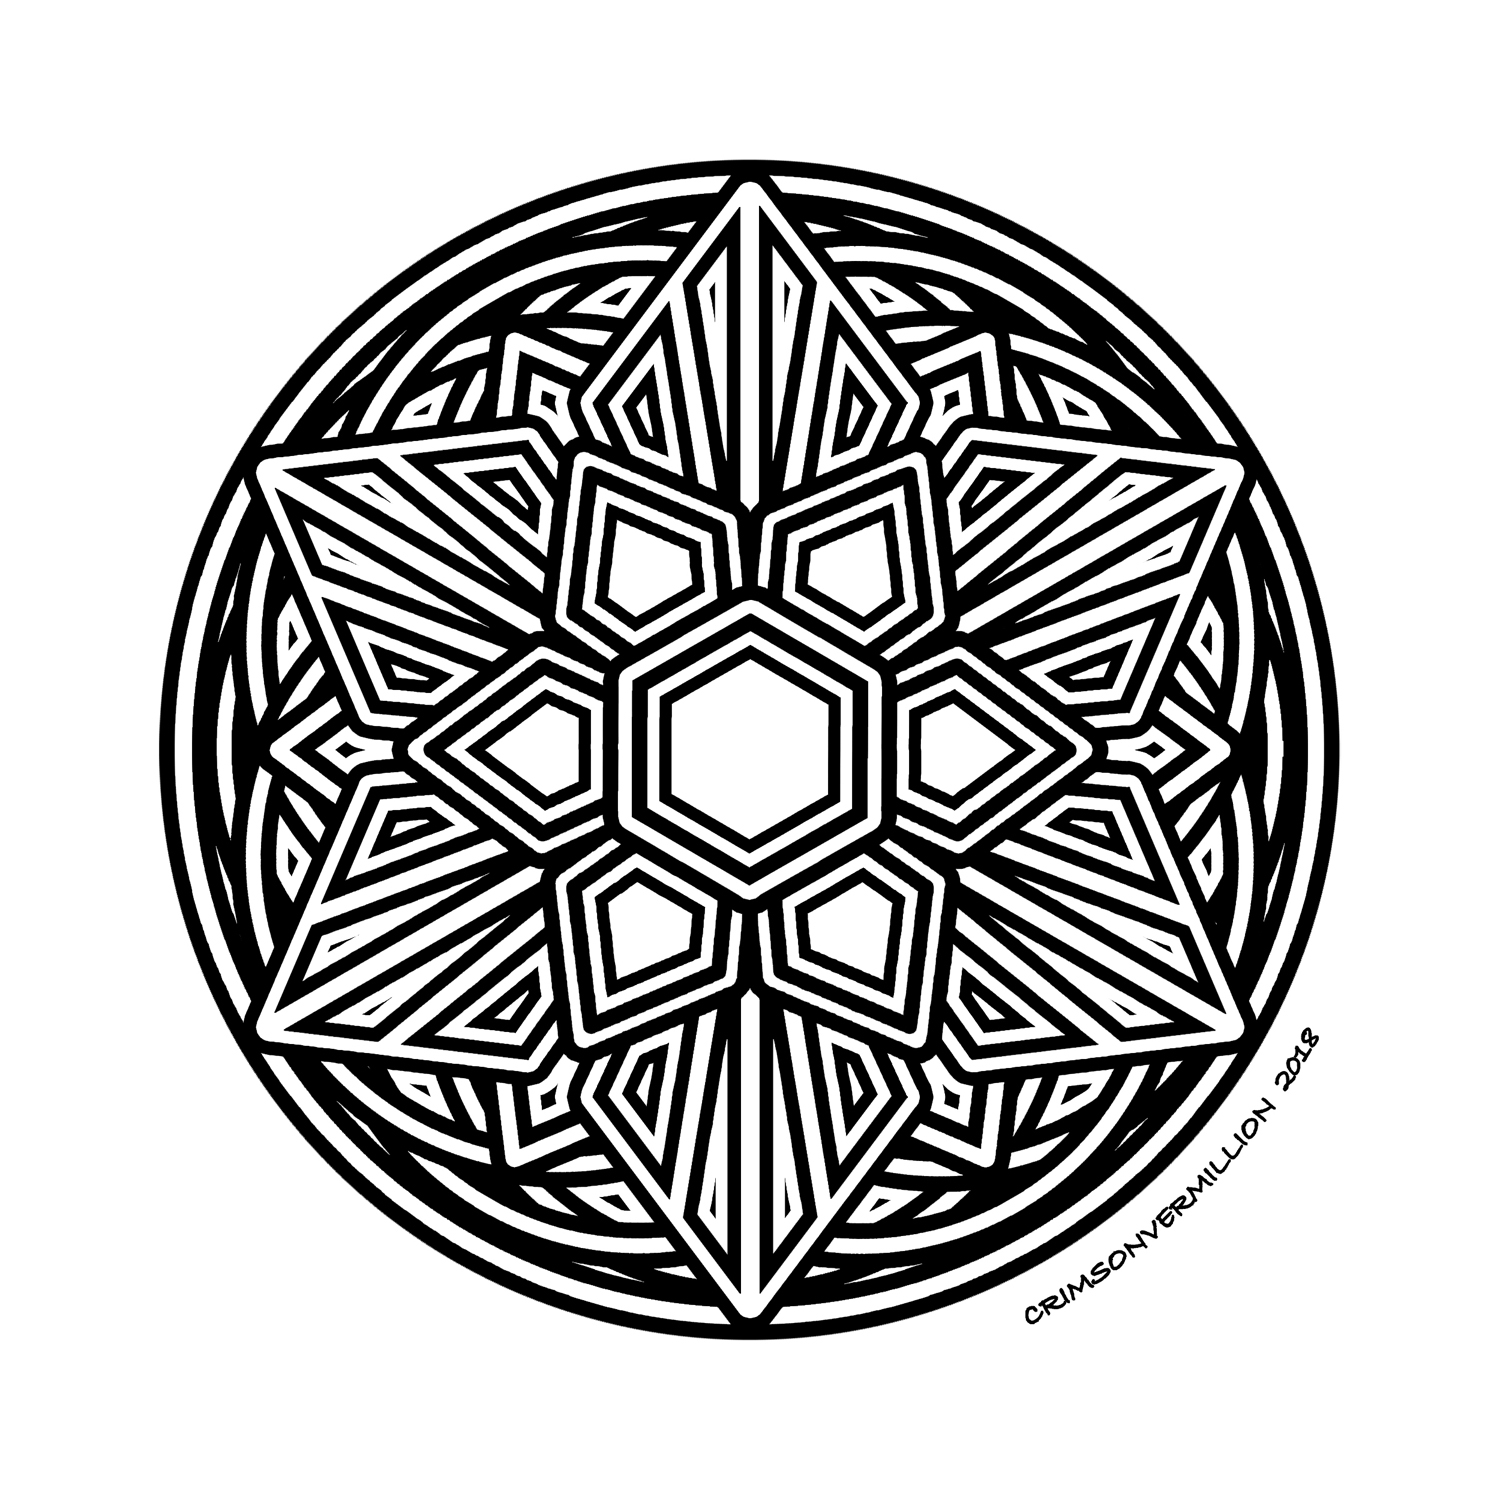 The alliance of rounded and spades gives a real strength to this mandala.